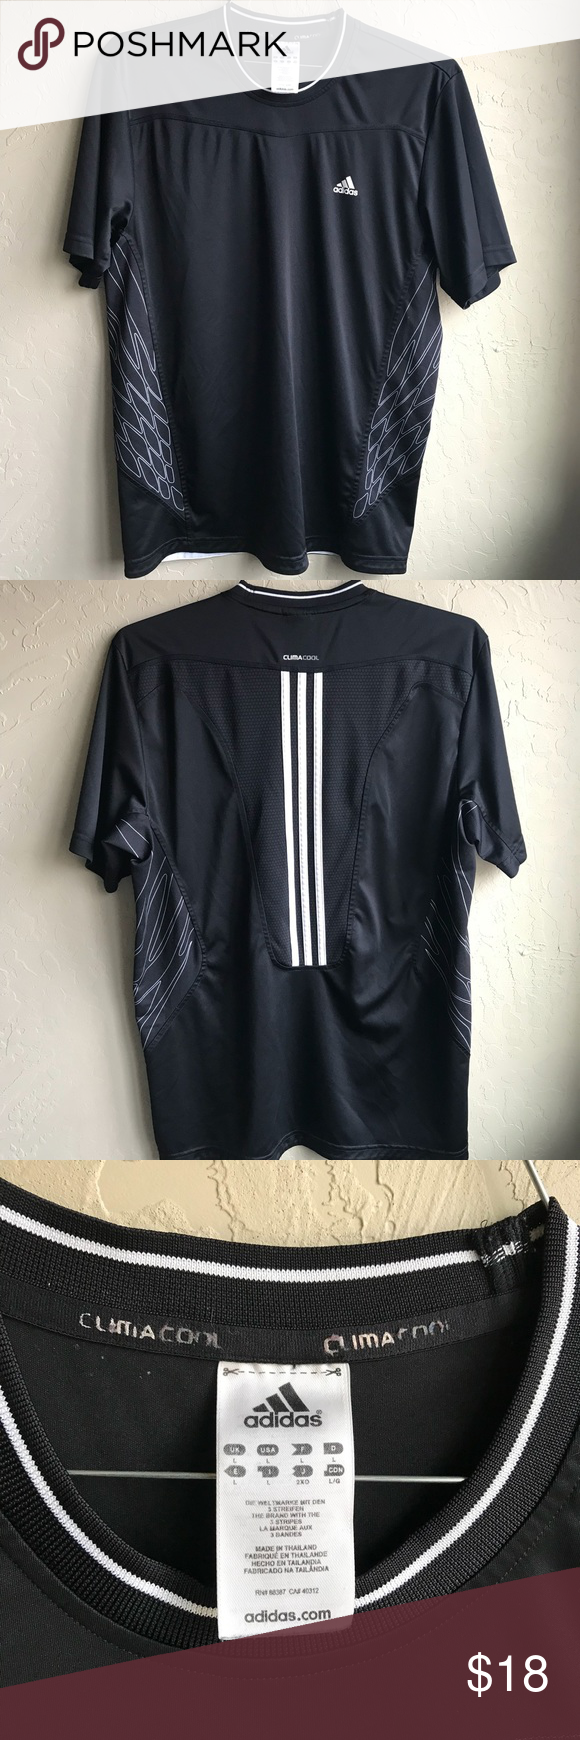 aa811a14d ADIDAS Clima cool Dri Fit Athletic T shirt Large Excellent condition Men's Adidas  Climacool Dri Fit Athletic t shirt Black Large! No stains or snags!